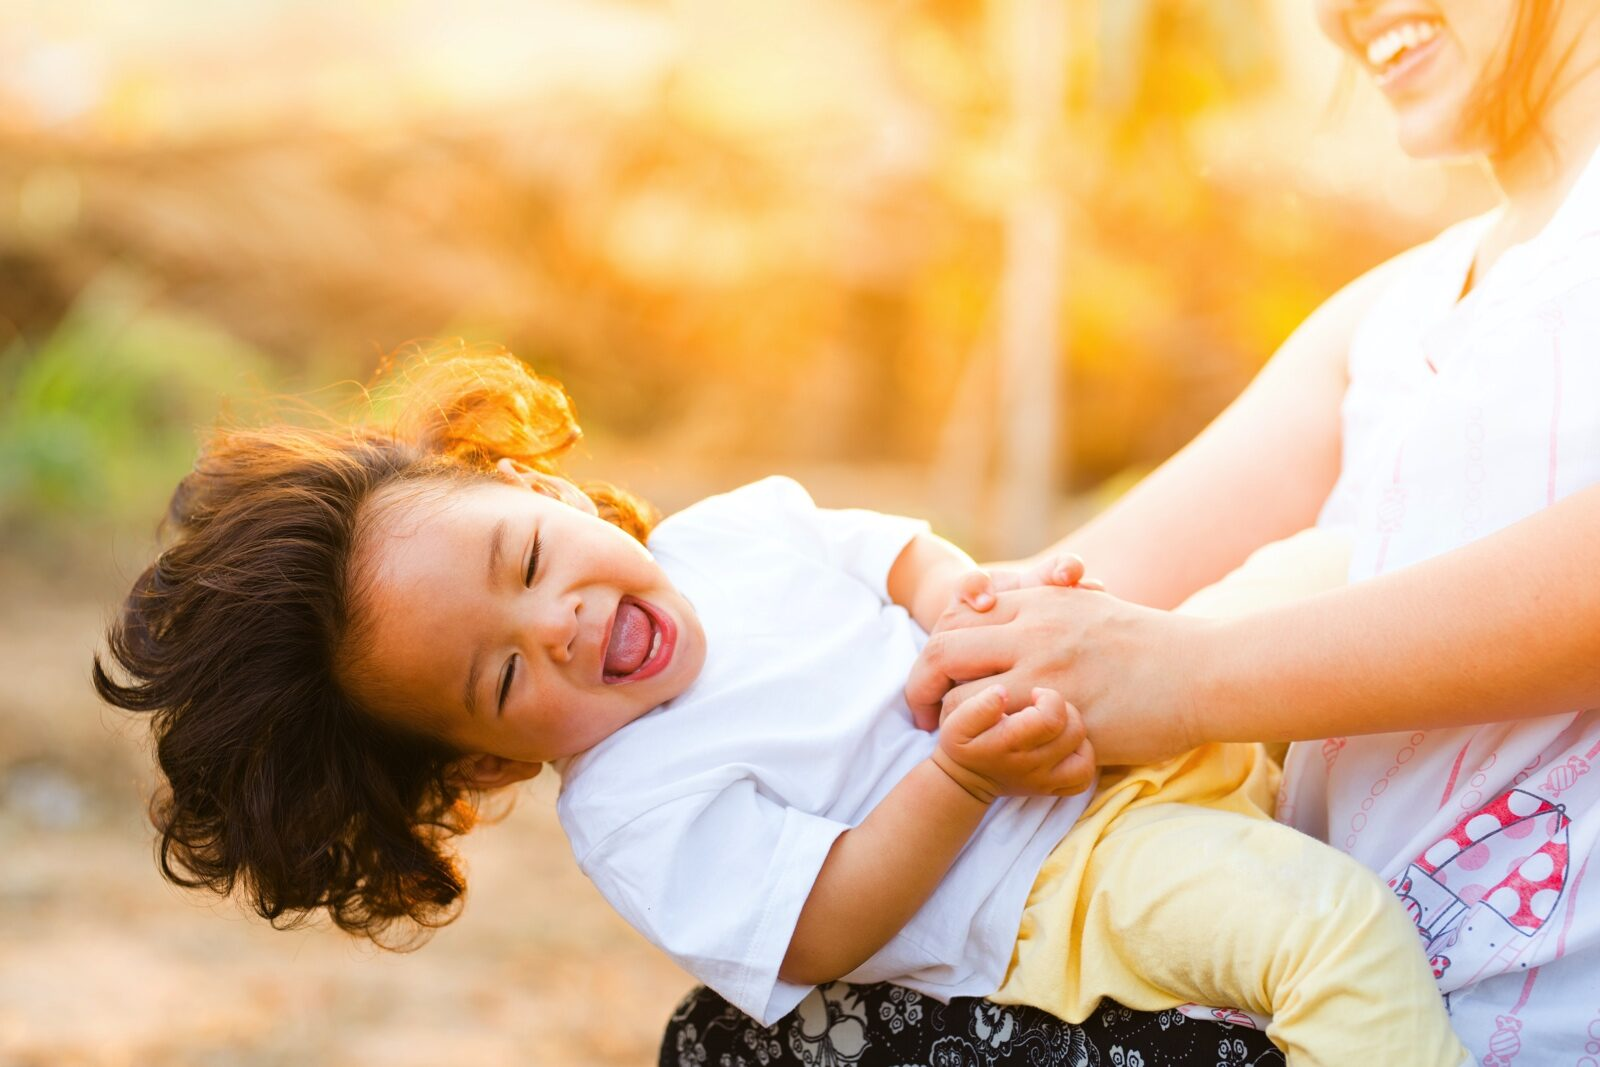 Laughing child leaning back on woman's knee